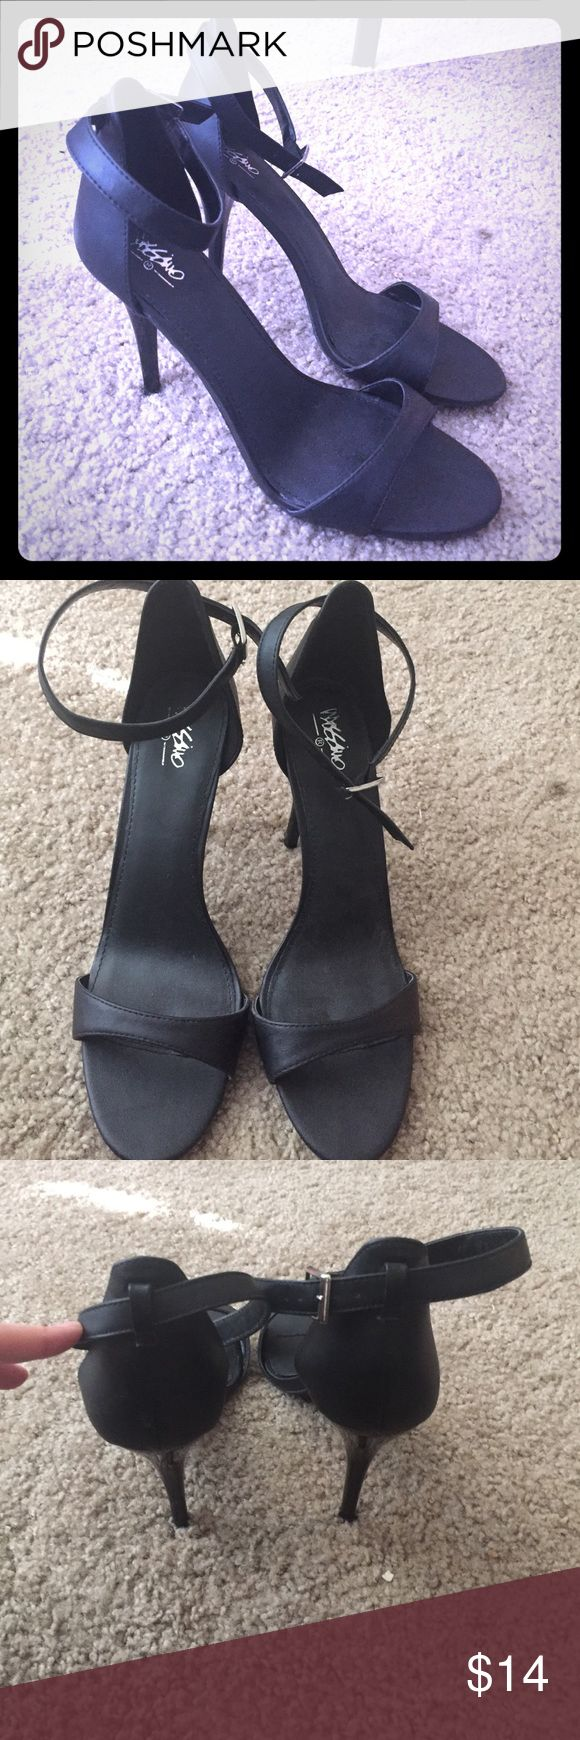 Black strap heels Awesome black heels! Only worn once! Great condition! Let me know if you have any questions! I accept reasonable offers! Mossimo Supply Co Shoes Heels